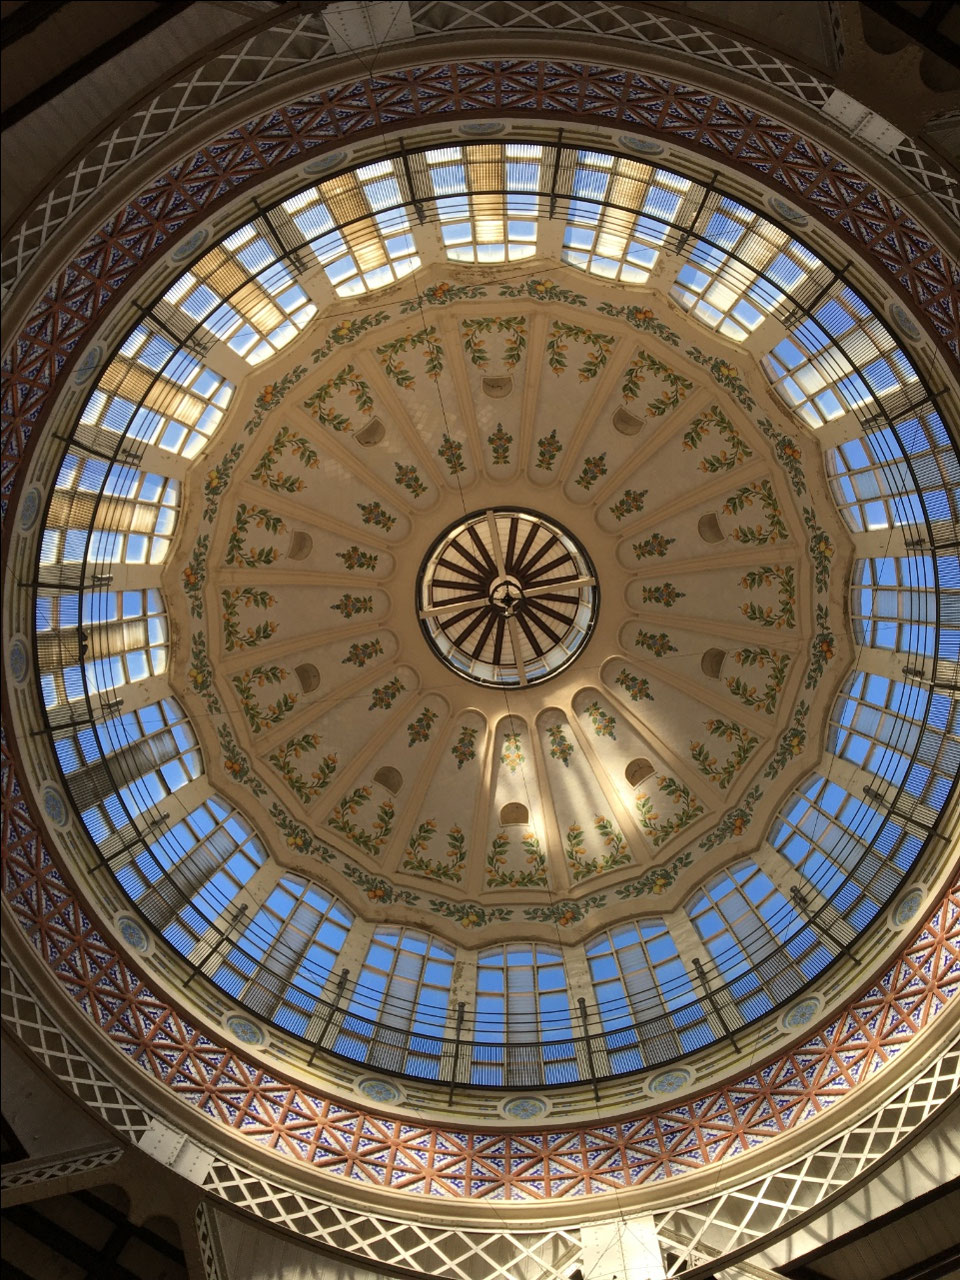 The skylight in the Mercado Central